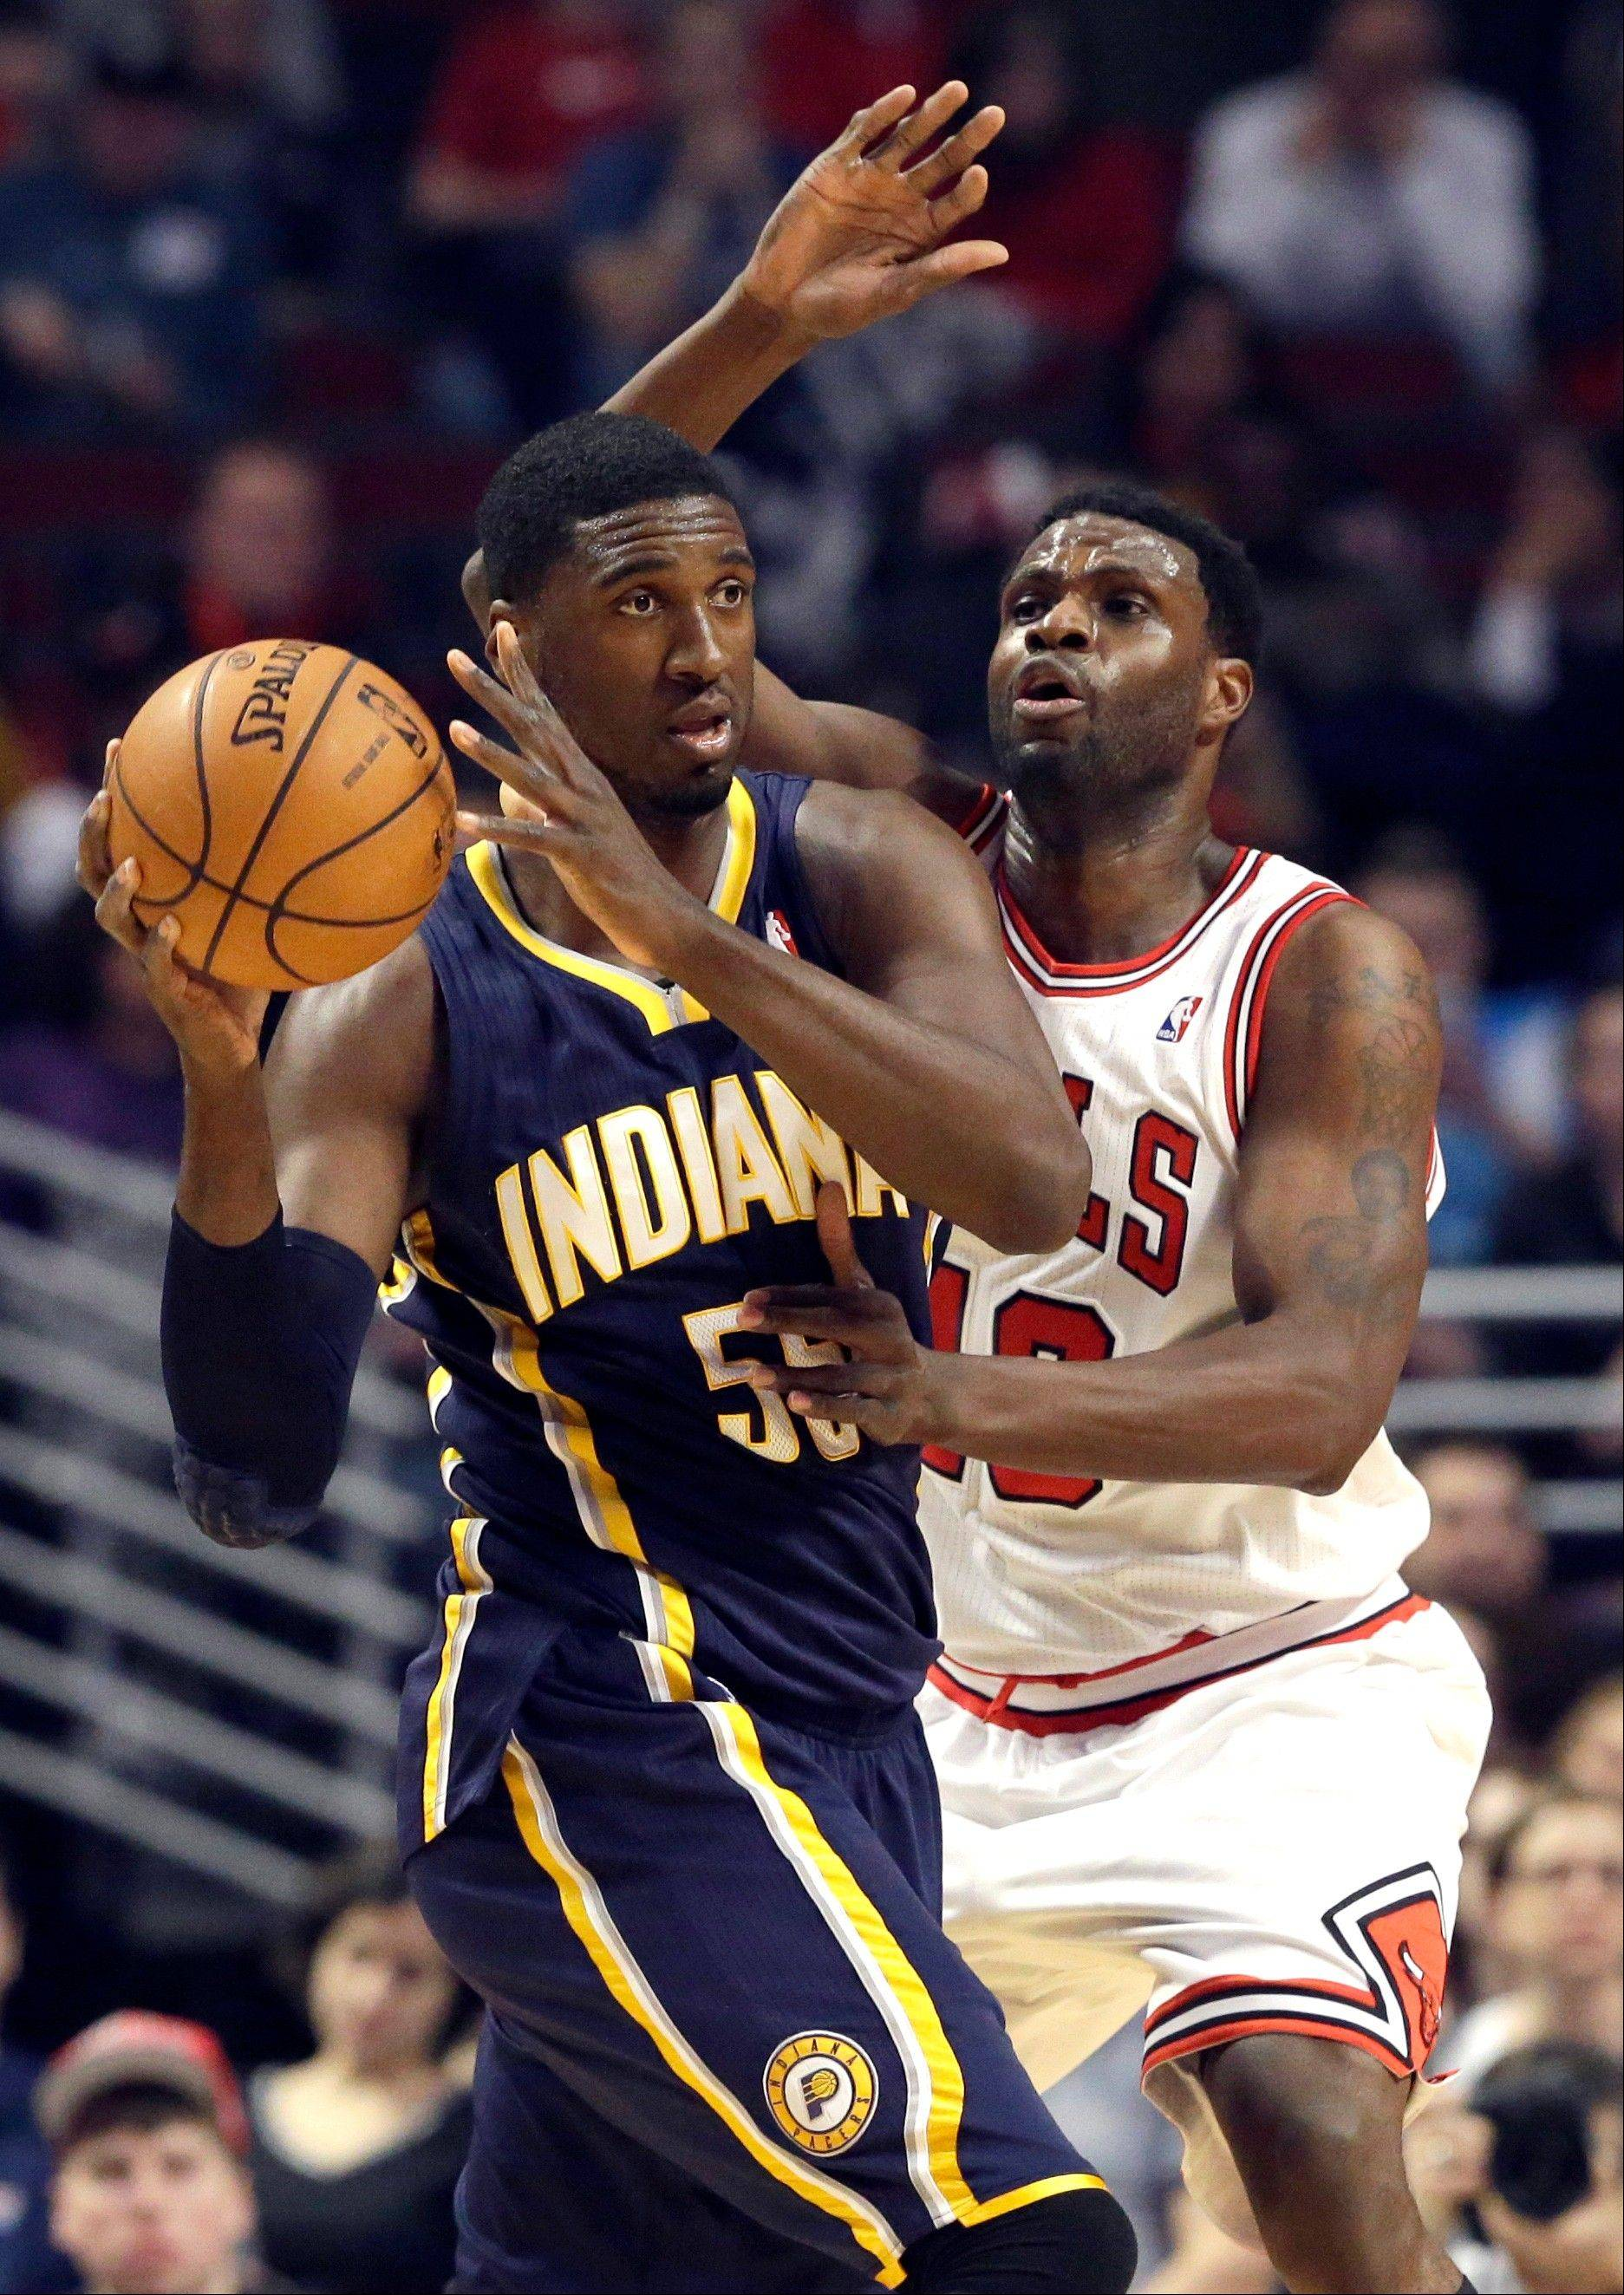 Bulls center Nazr Mohammed plays some tight defense on the Pacers' Roy Hibbert on Saturday night at the United Center.